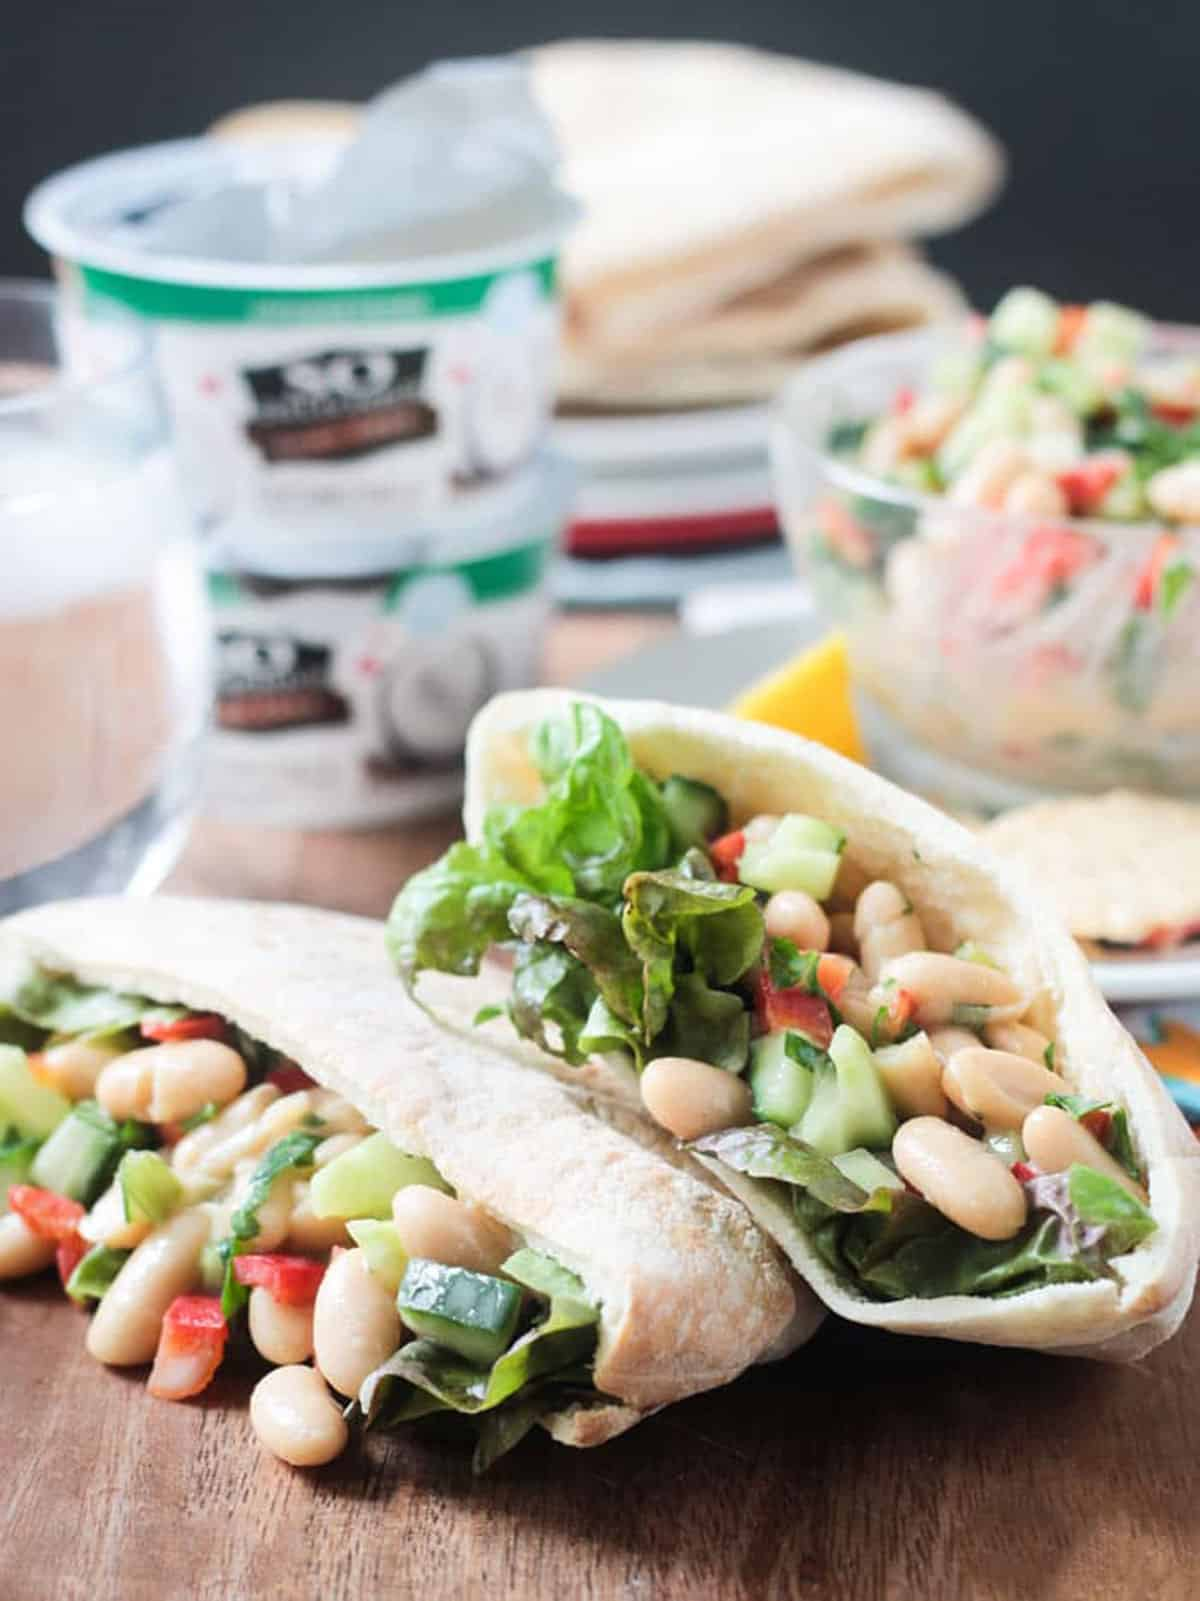 White beans, cucumber, red bell pepper and lettuce in a pita pocket.